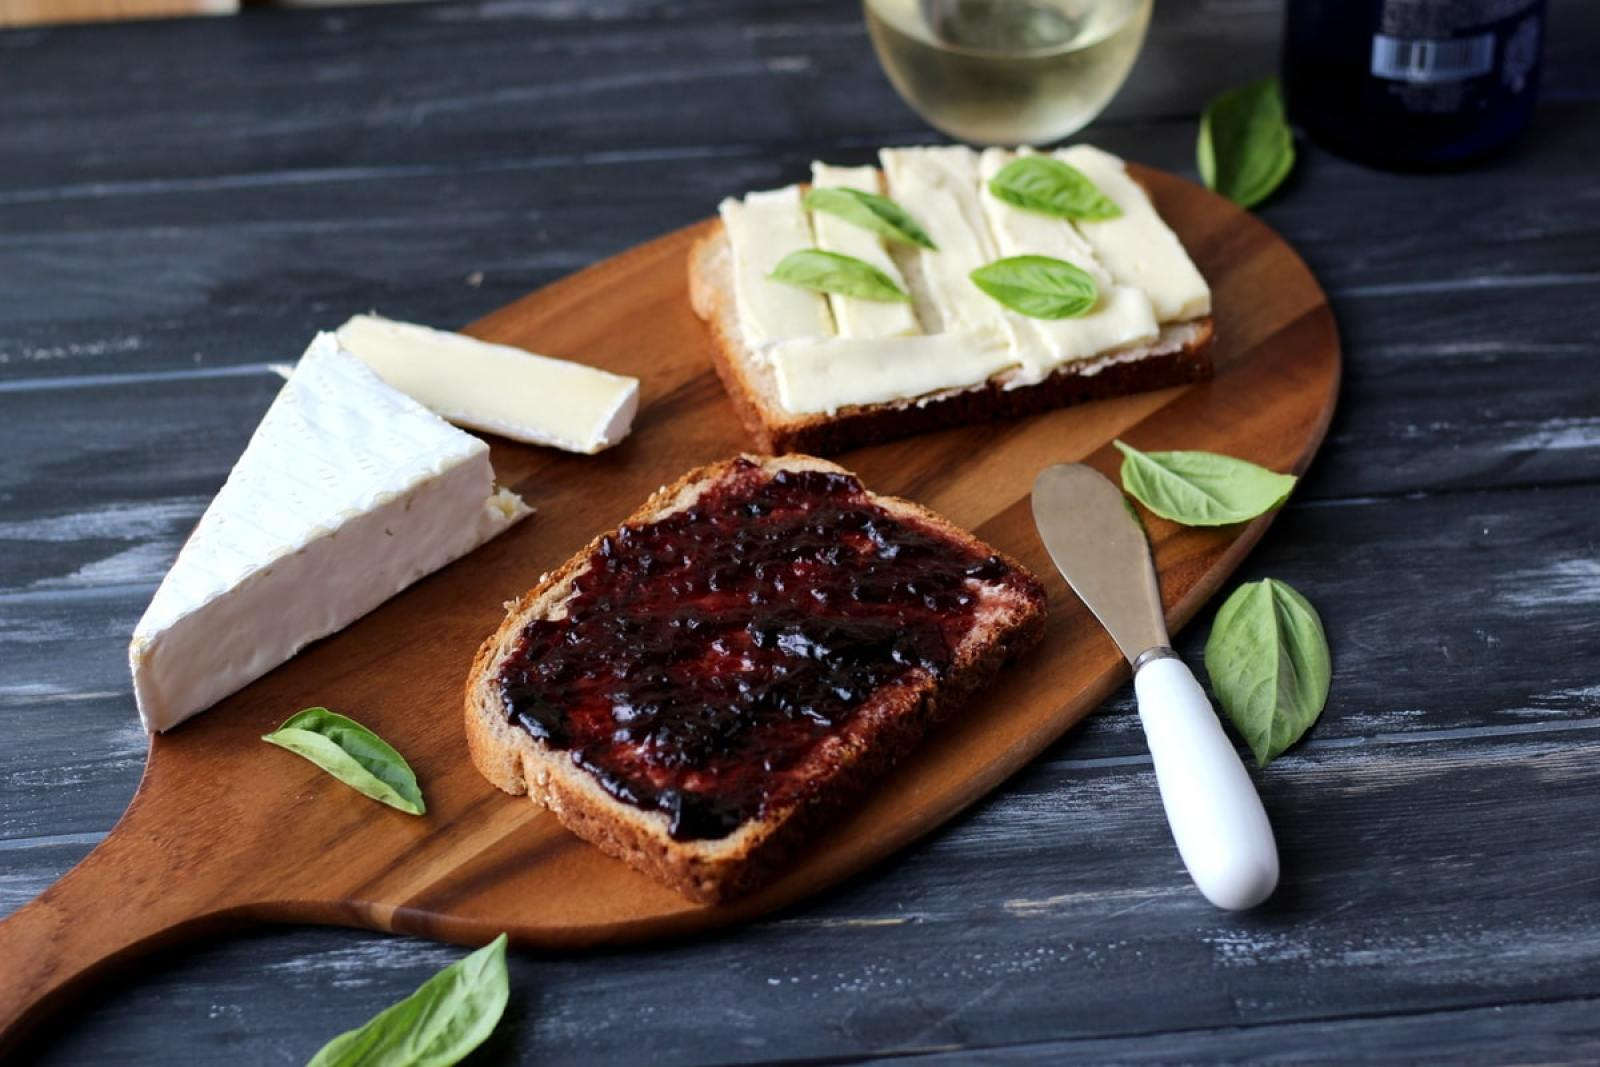 Baked Brie Grilled Cheese Sandwich with Sweet Basil and Boysenberry Jam